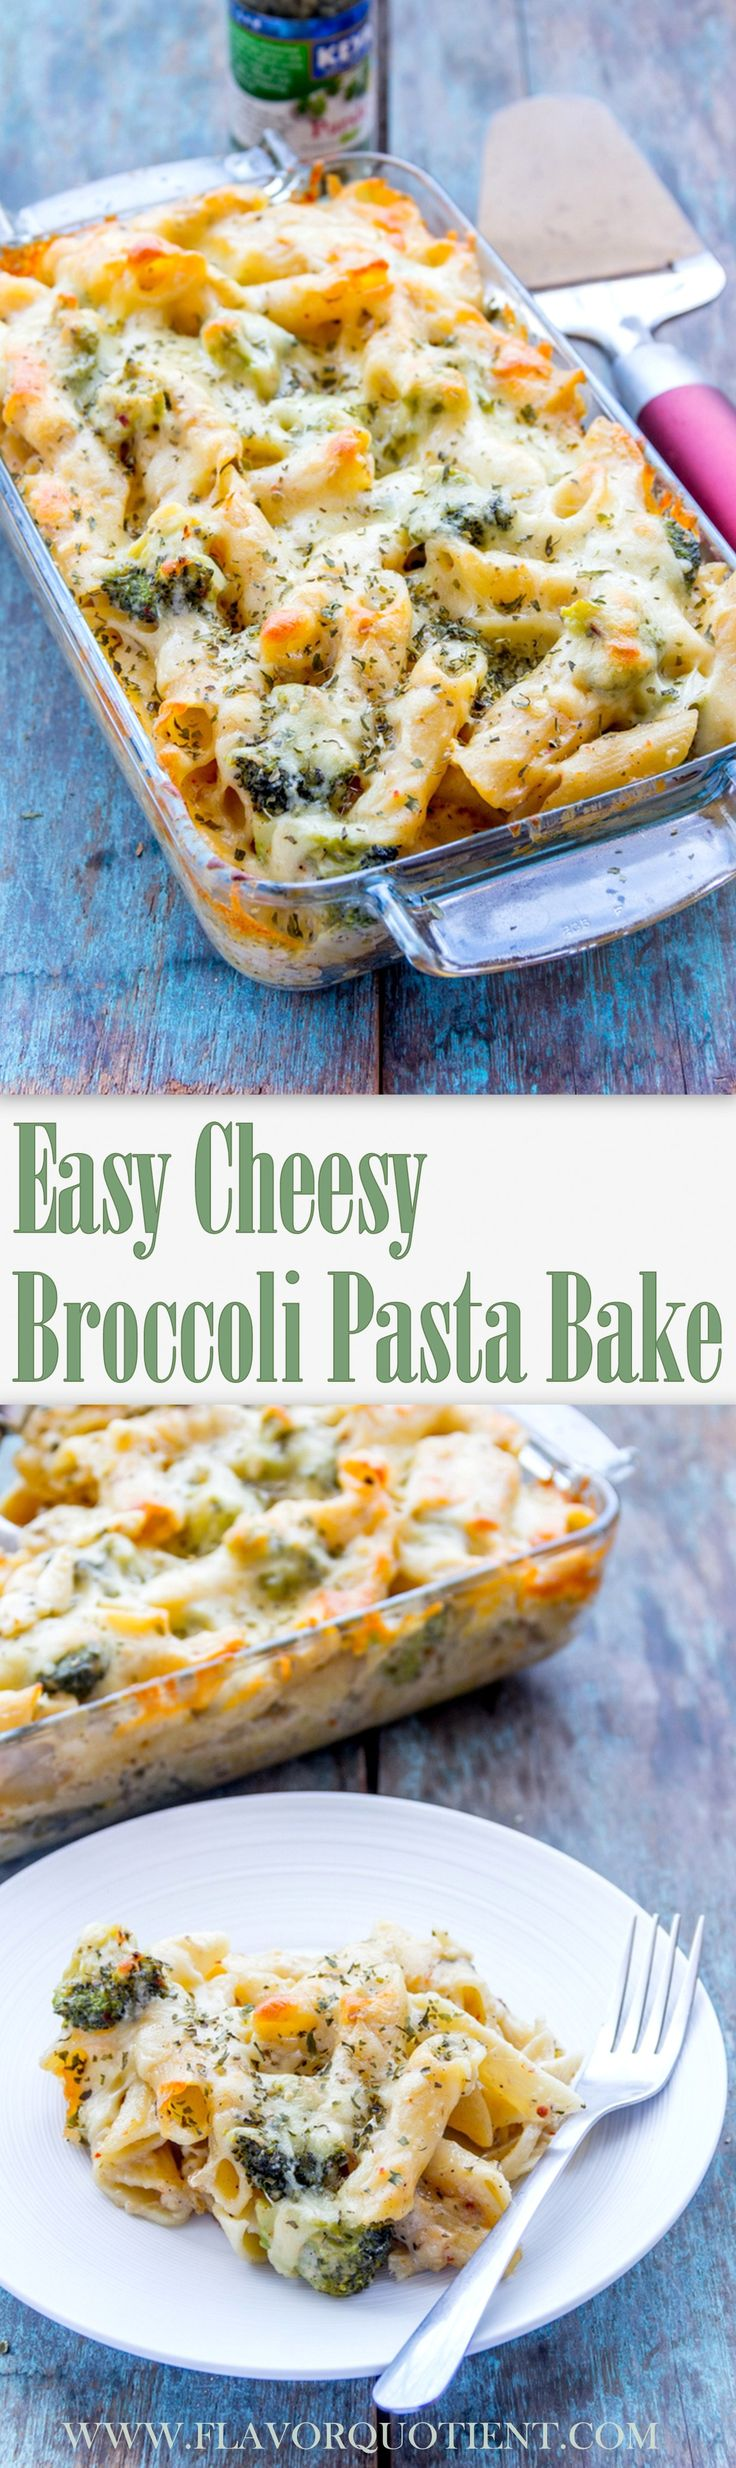 Easy Cheesy Broccoli Pasta Bake This easy cheesy pasta bake itself sounds so amusing that it is bound to bring a smile on your face as soon as you hear about it! Now take a look at it and see how your smile expands #BakedPasta #EasyPasta #EasyBAkedPastaRecipes #BakedPastaDishes #CheesyPasta #BroccoliPasta #Broccoli #CheesyBroccoliPastaBake #ItalianFood #PastaRecipes #Pasta #FlavorQuotient